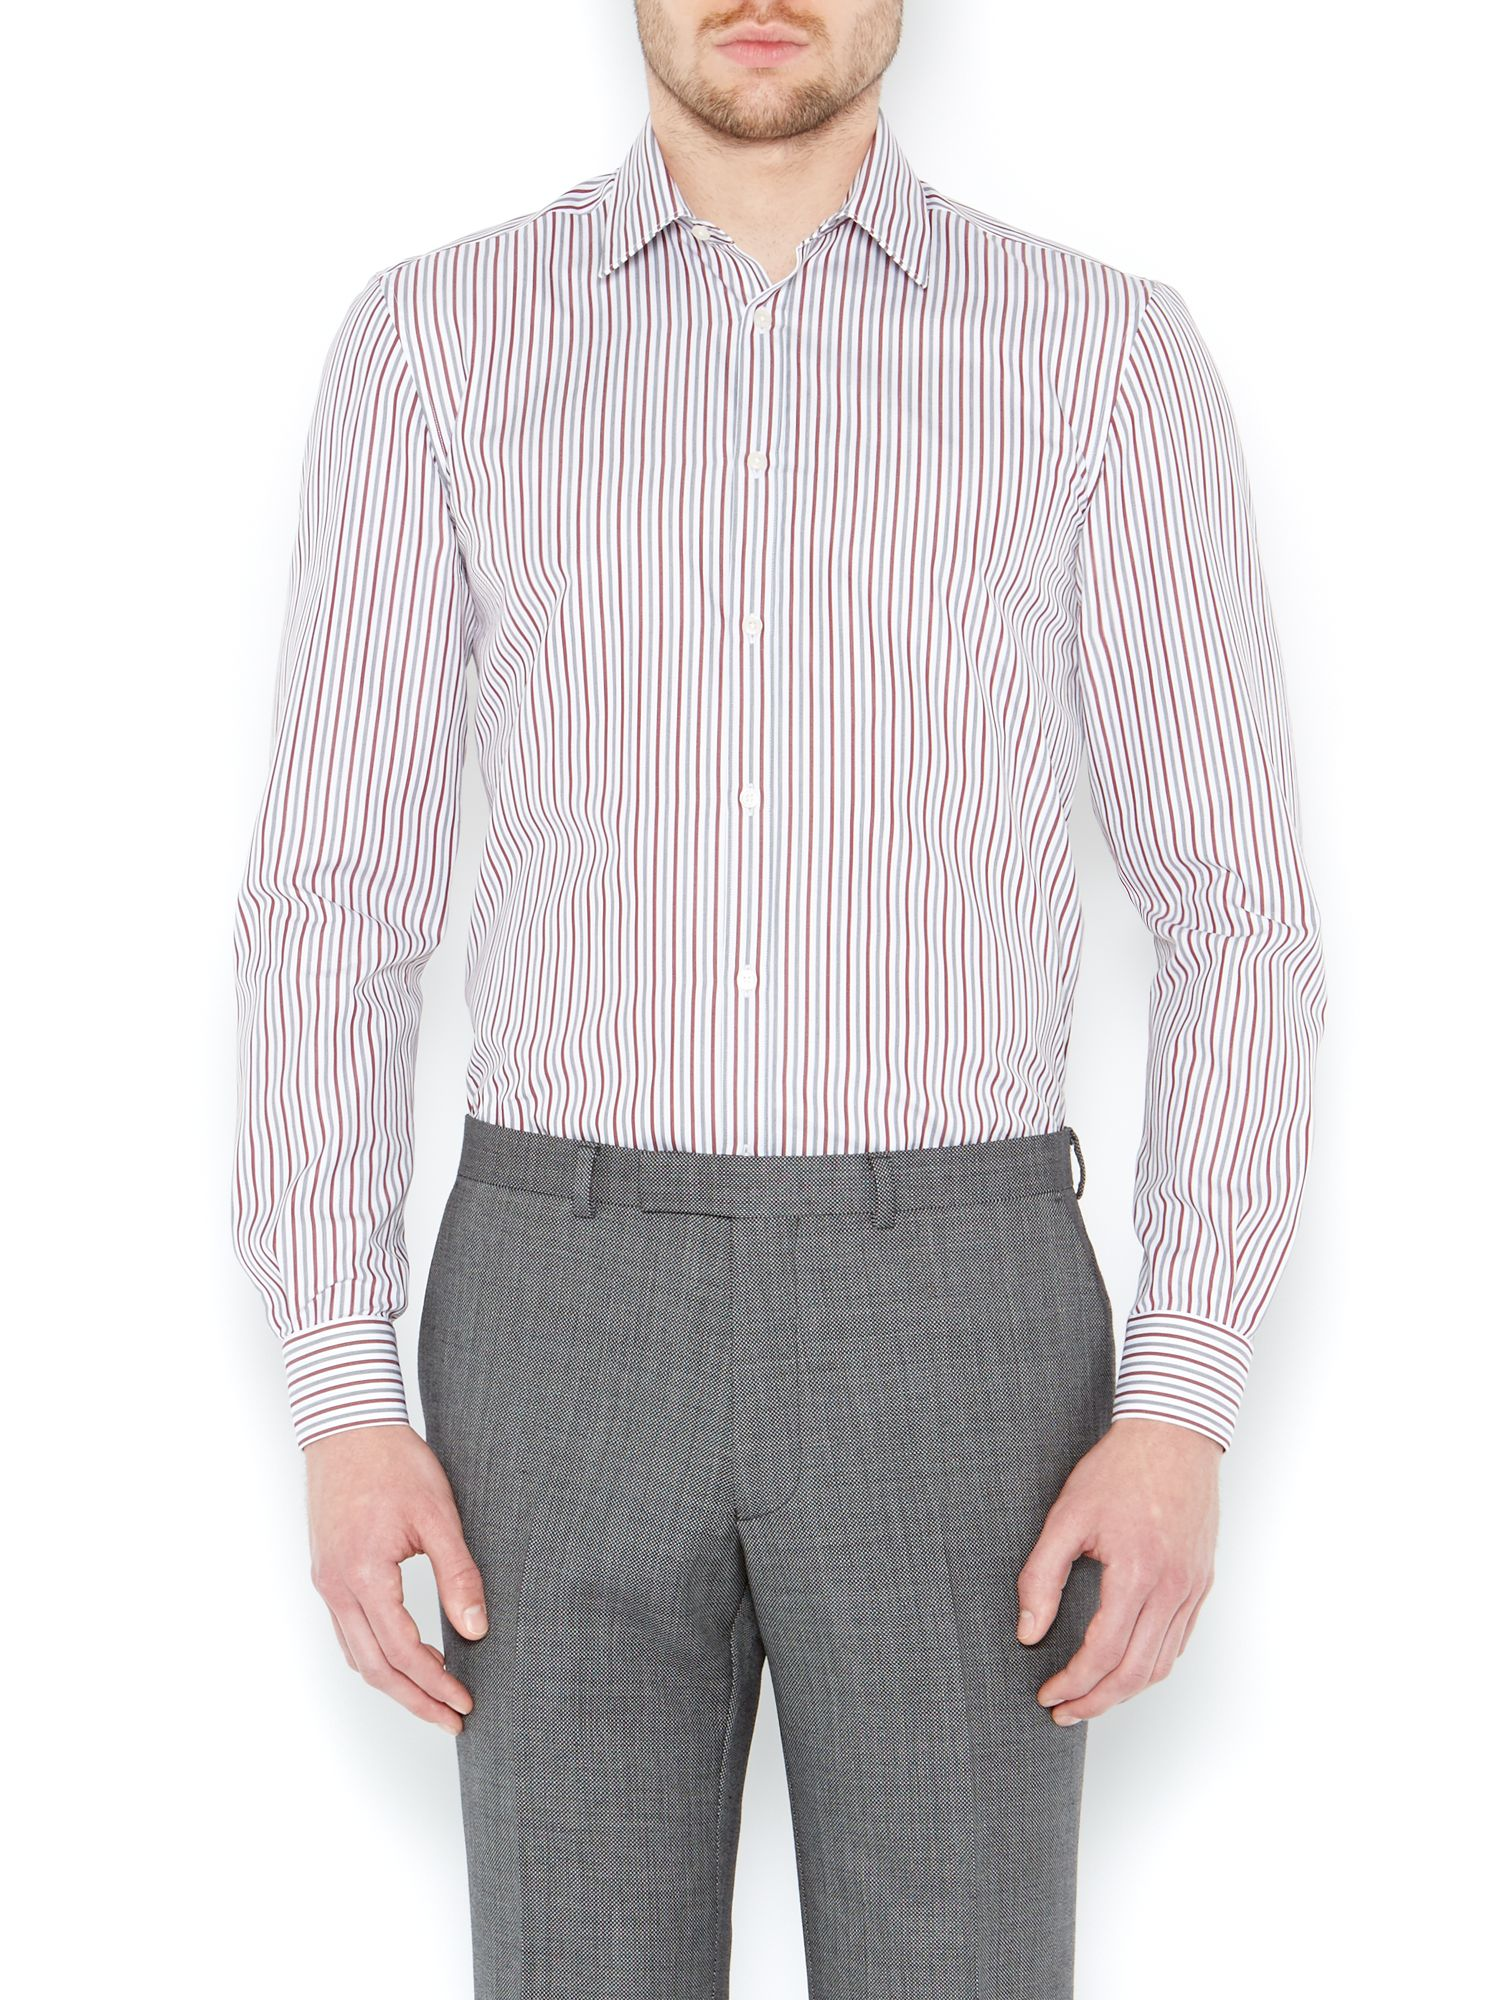 Varley Melange Stripe Single Cuff Shirt